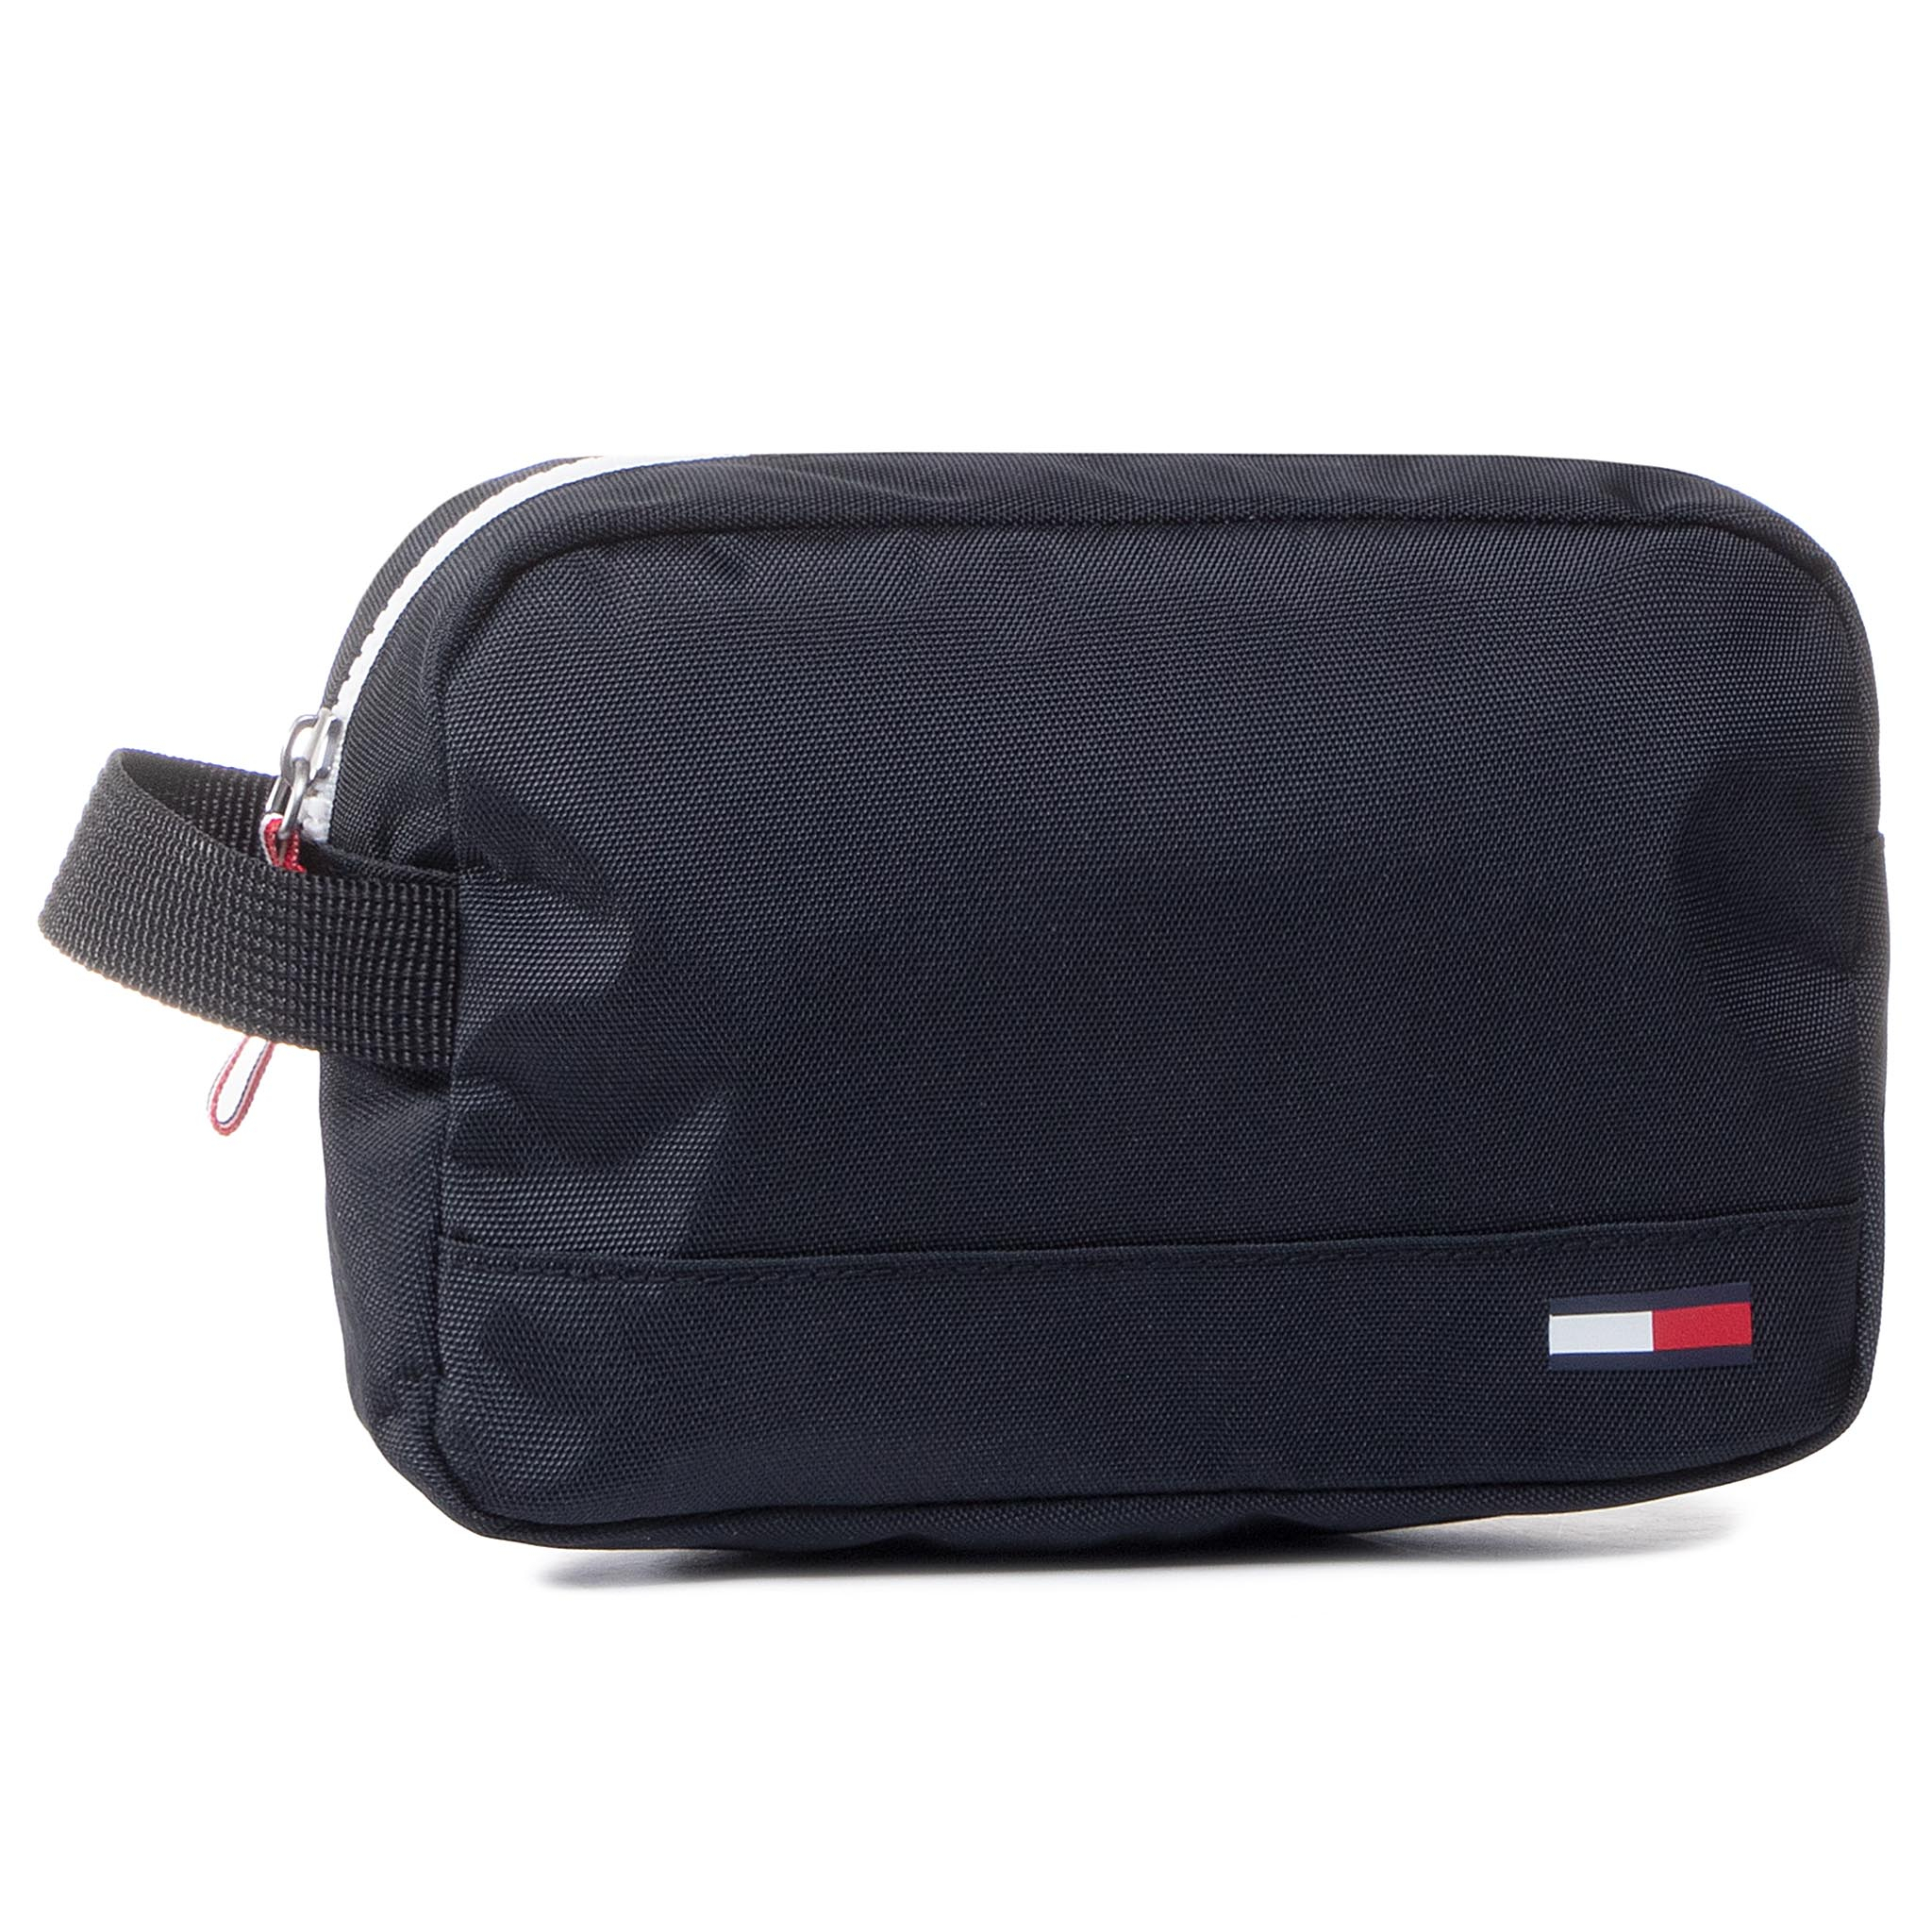 Geantă Pentru Cosmetice Tommy Jeans - Tjm Cool City Washbag Am0am05970 Bds imagine epantofi.ro 2021